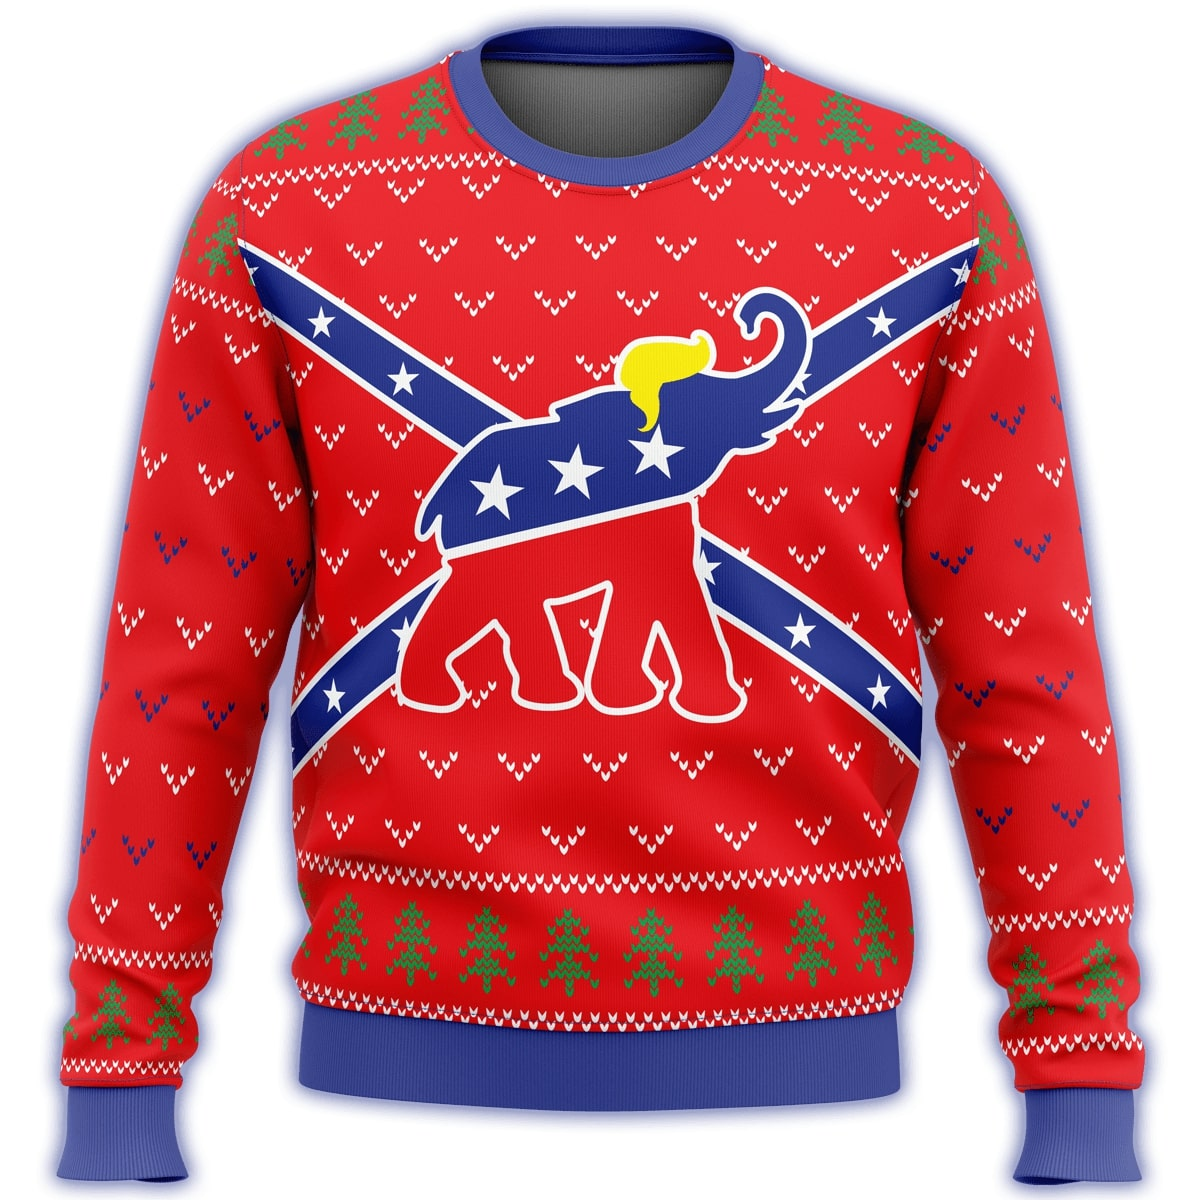 republican flag elephant all over printed ugly christmas sweater 3